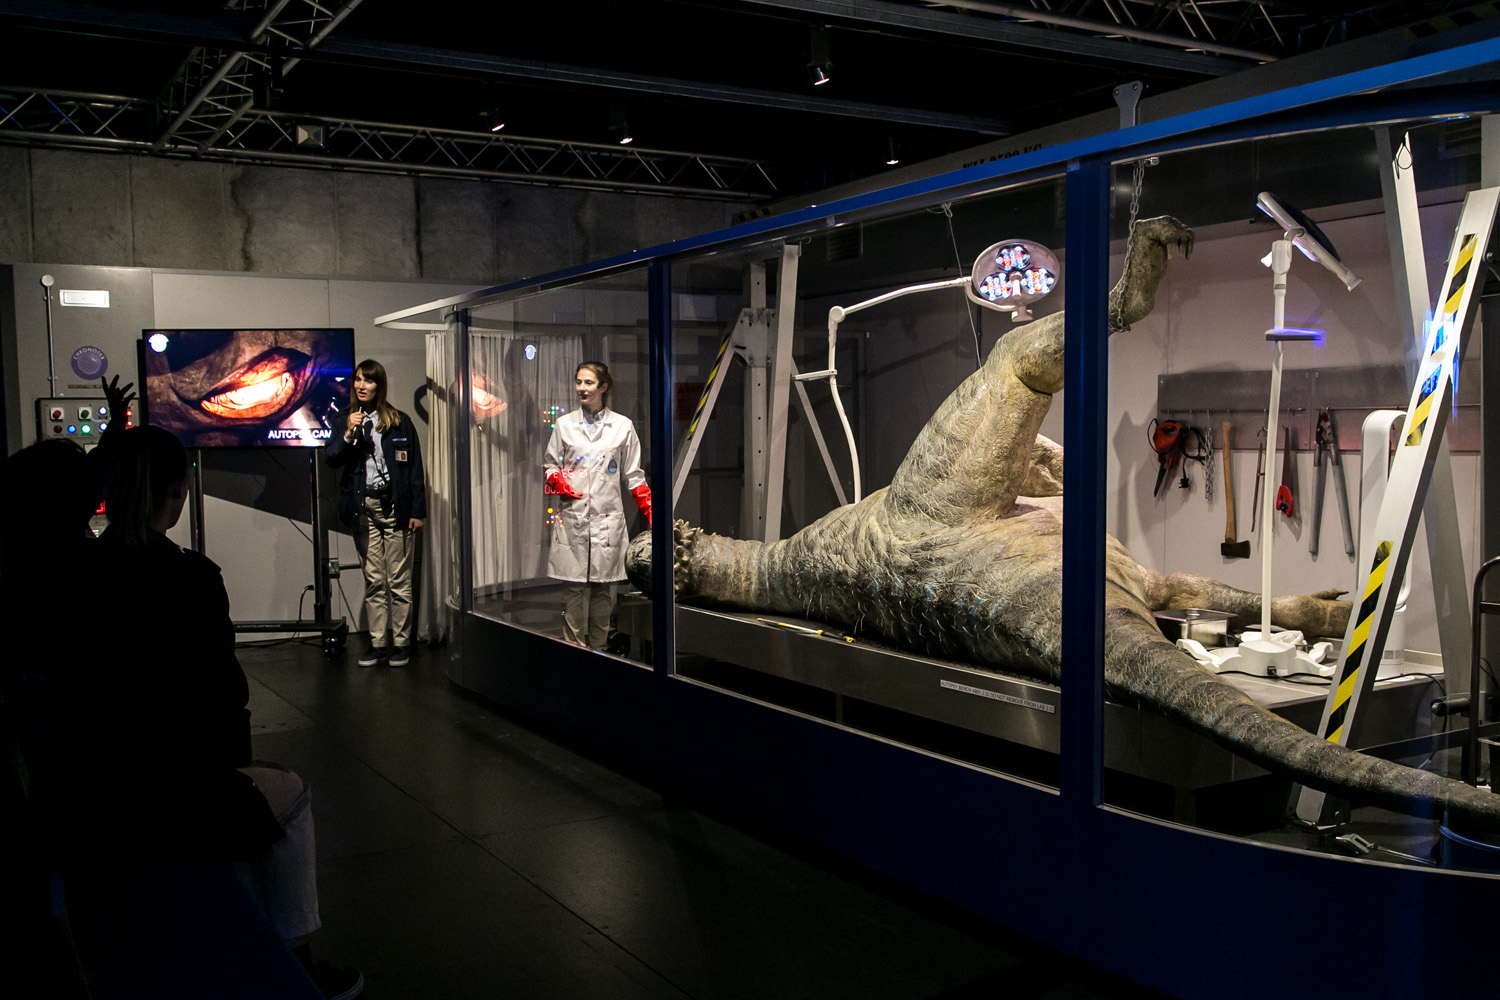 FRD provided project planning, design of multimedia platforms, and fabrication and installation. In order to reinforce the accuracy and authenticity of the experience, in-depth palaeontological research was delivered in conjunction with immersive computer-generated multimedia, dynamic soundscapes and lighting elements, and state-of-the-art animatronics.